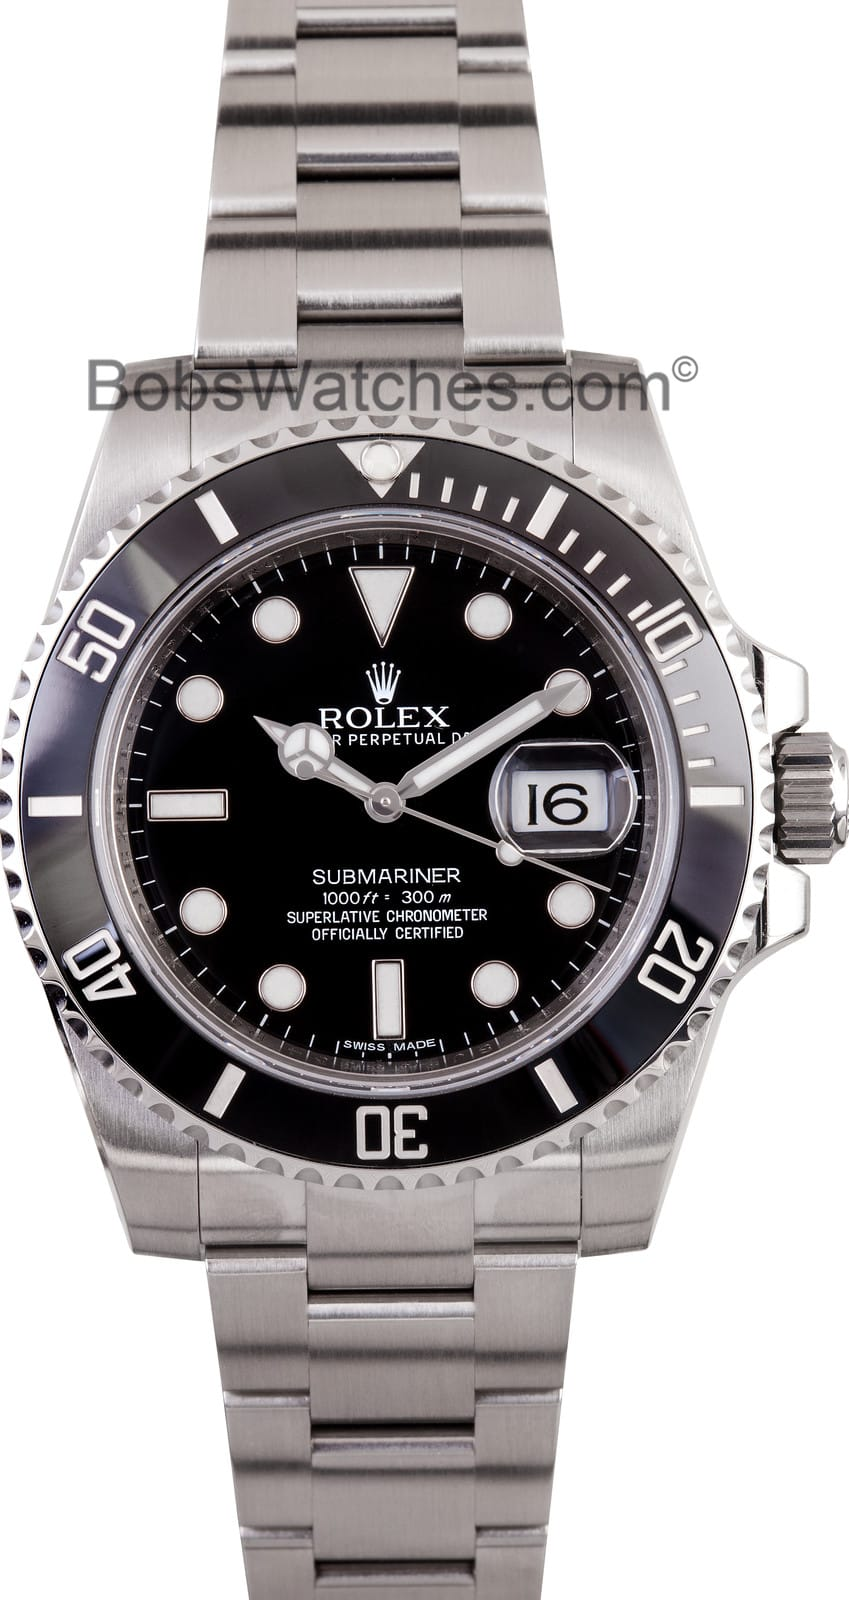 new model rolex black submariner 116610 submariner stainless steel 116610 with ceramic bezel. Black Bedroom Furniture Sets. Home Design Ideas